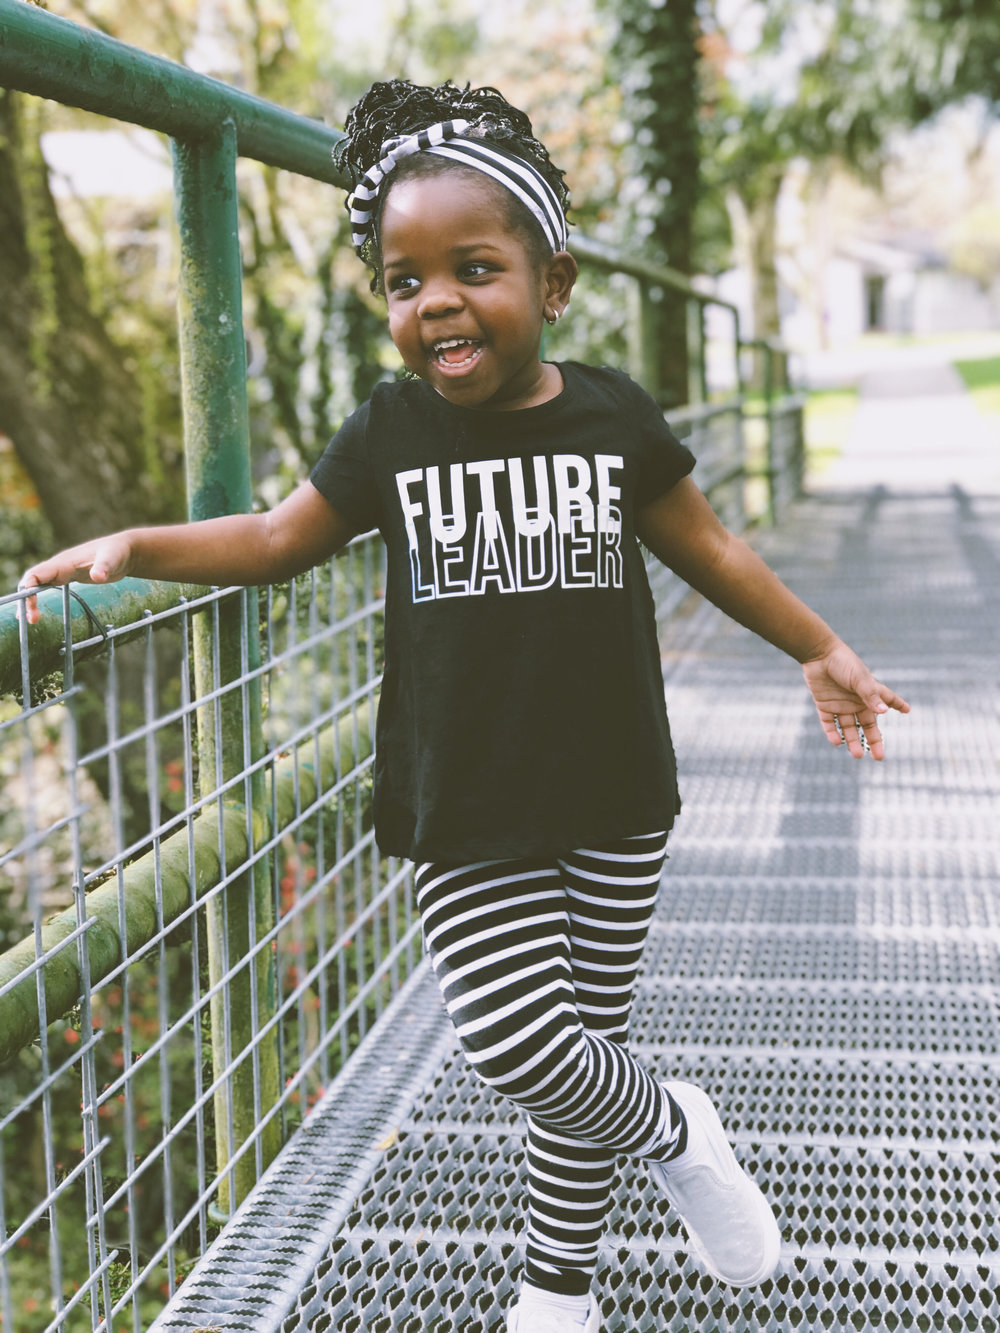 KIDS ARE OUR FUTURE. WE HAVE TO INSTILL IN THEM NOW THE POSITIVE ATTITUDES WE WANT REFLECTED IN FUTURE CHANGE.